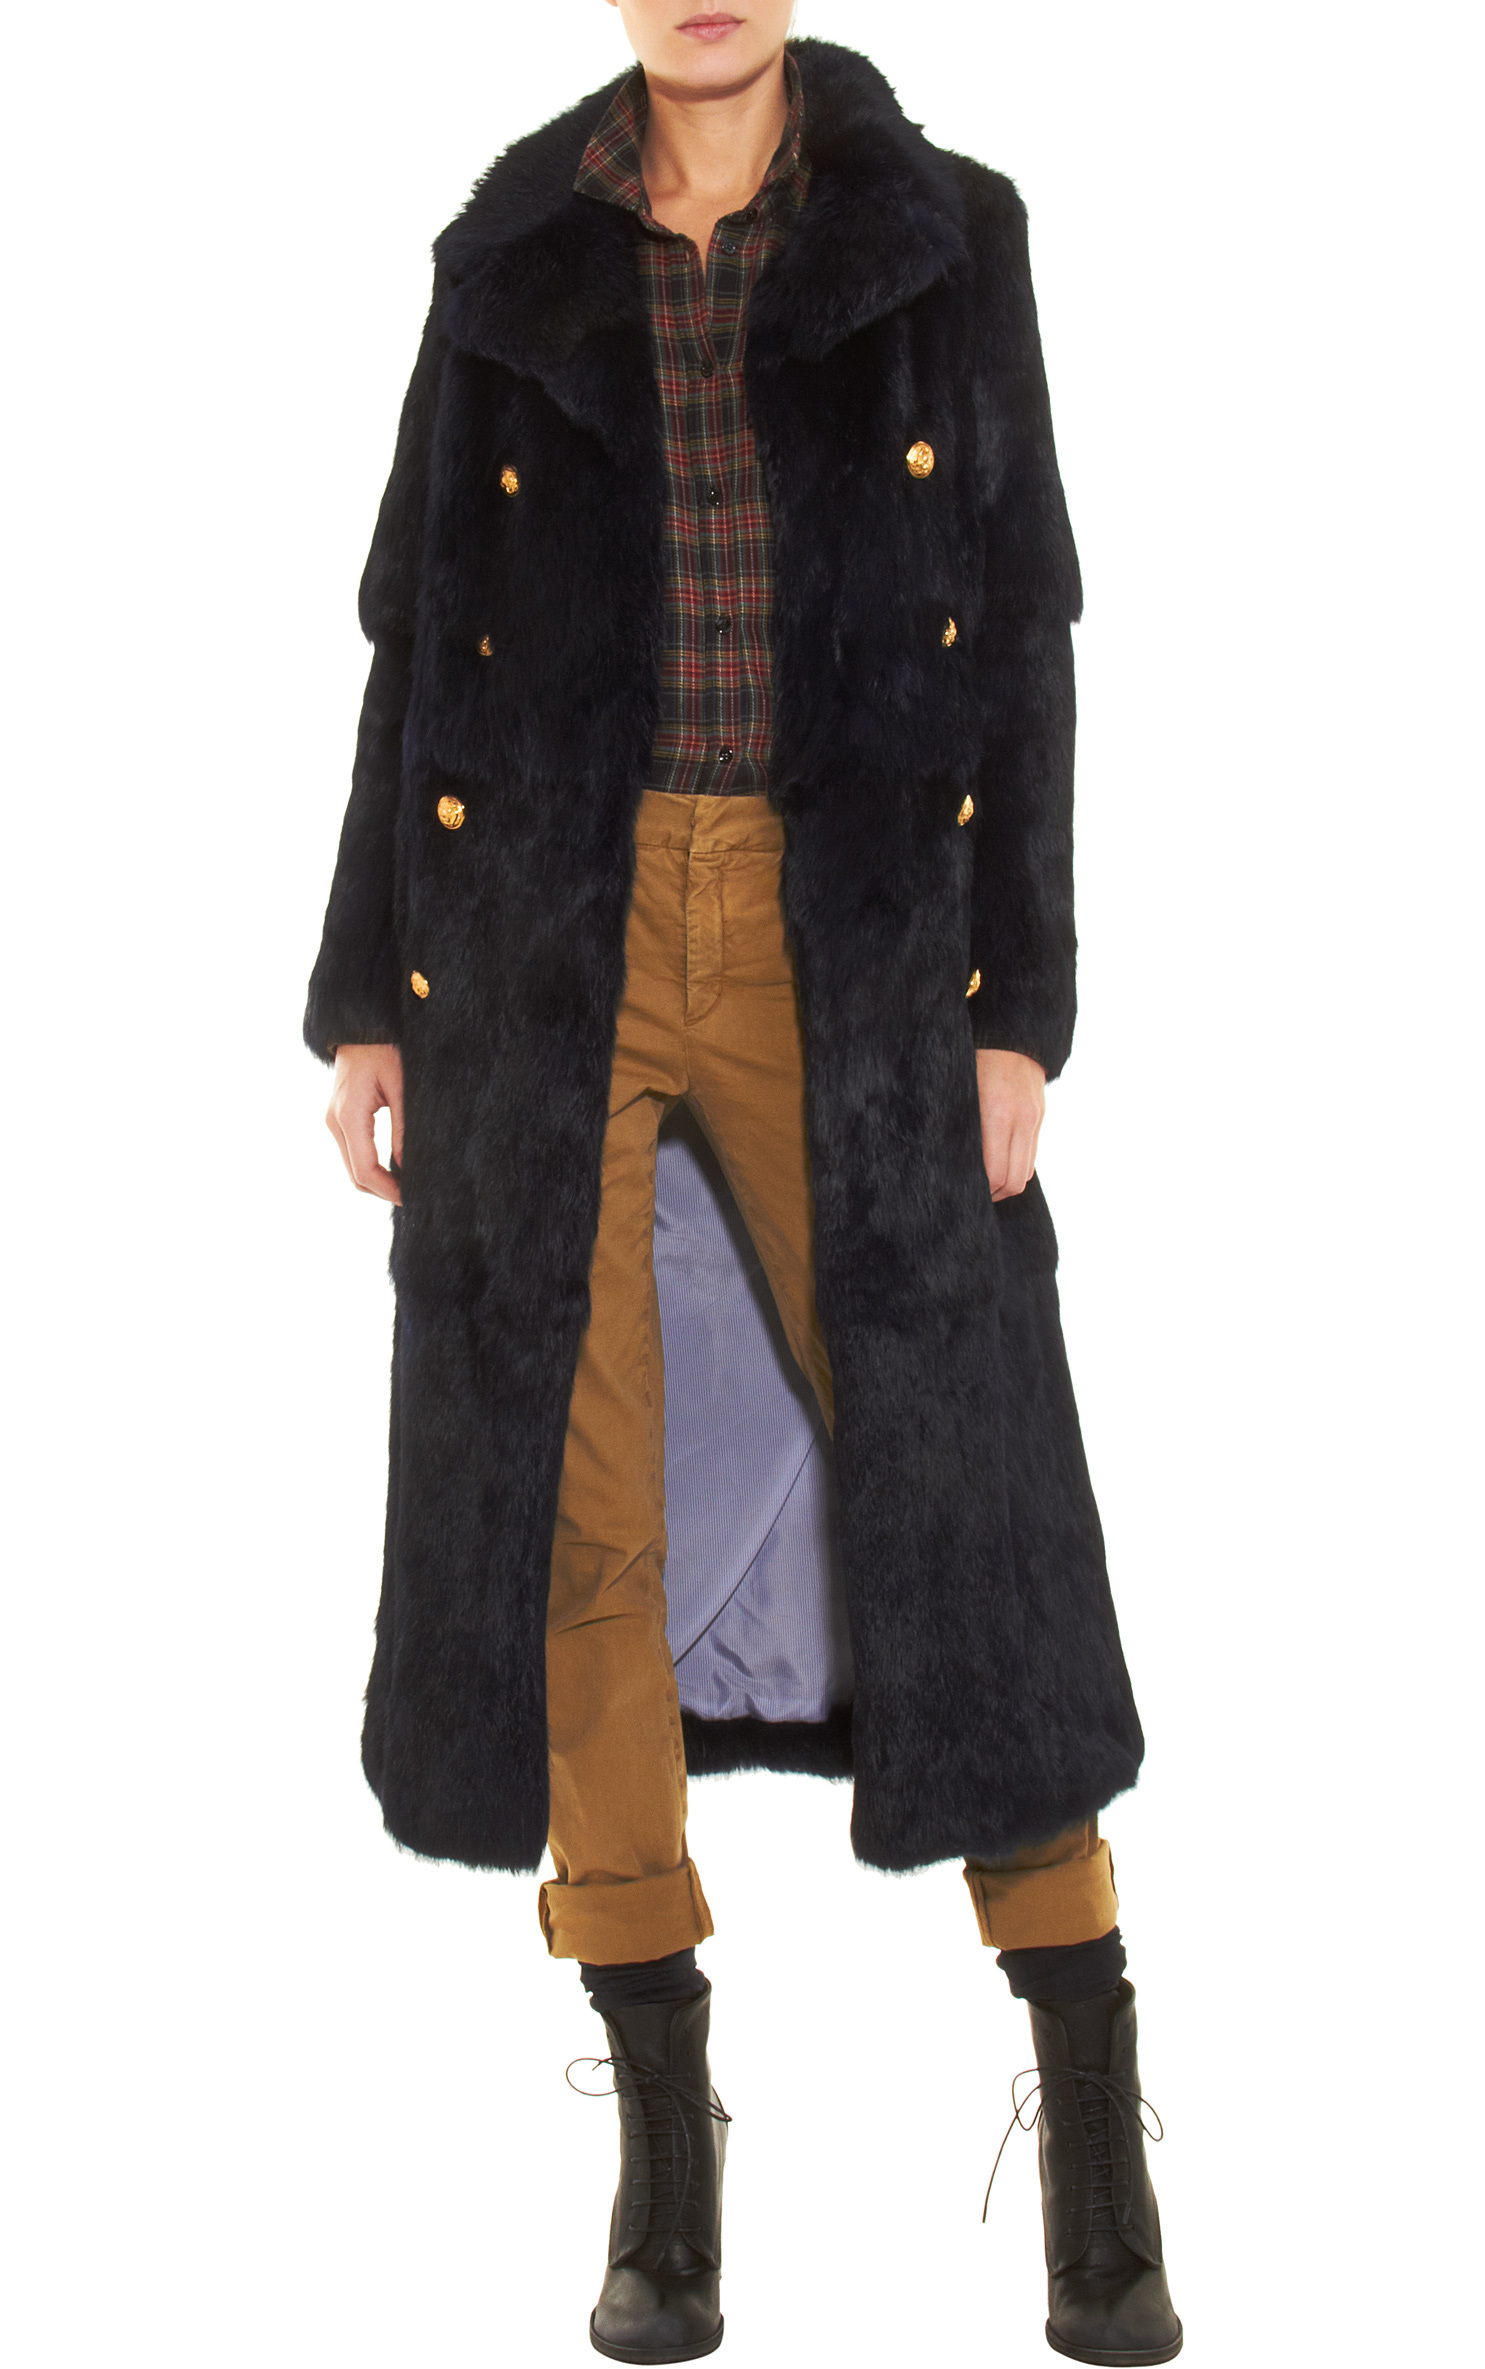 barneys_coat_ fashion_images.jpg